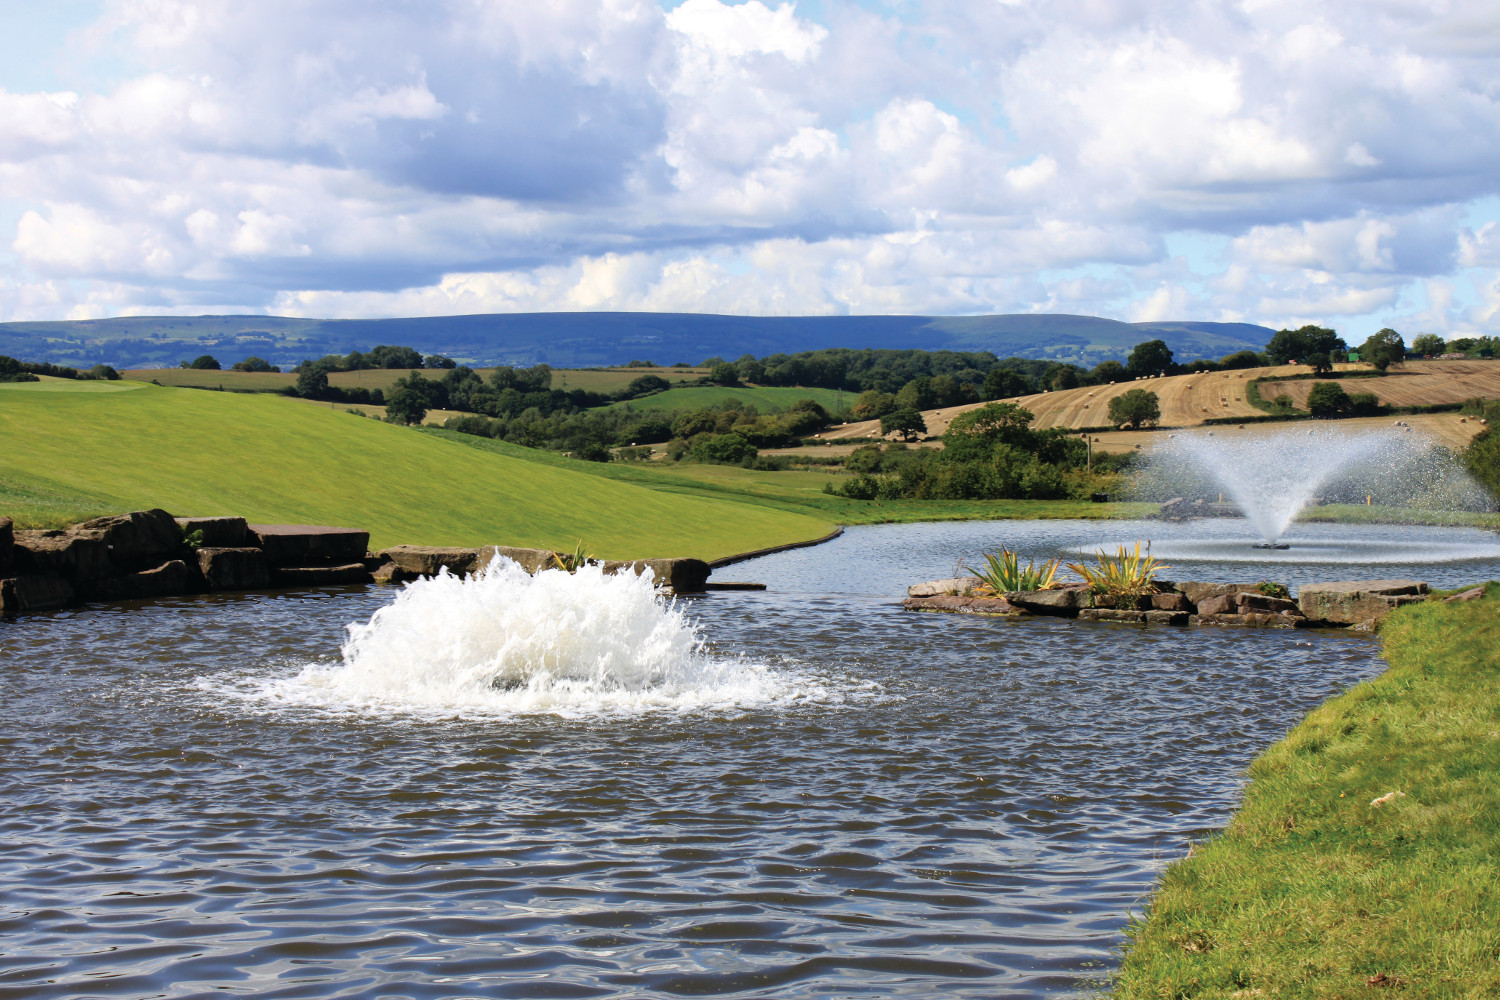 Otterbine Aerating Fountains at a gold course